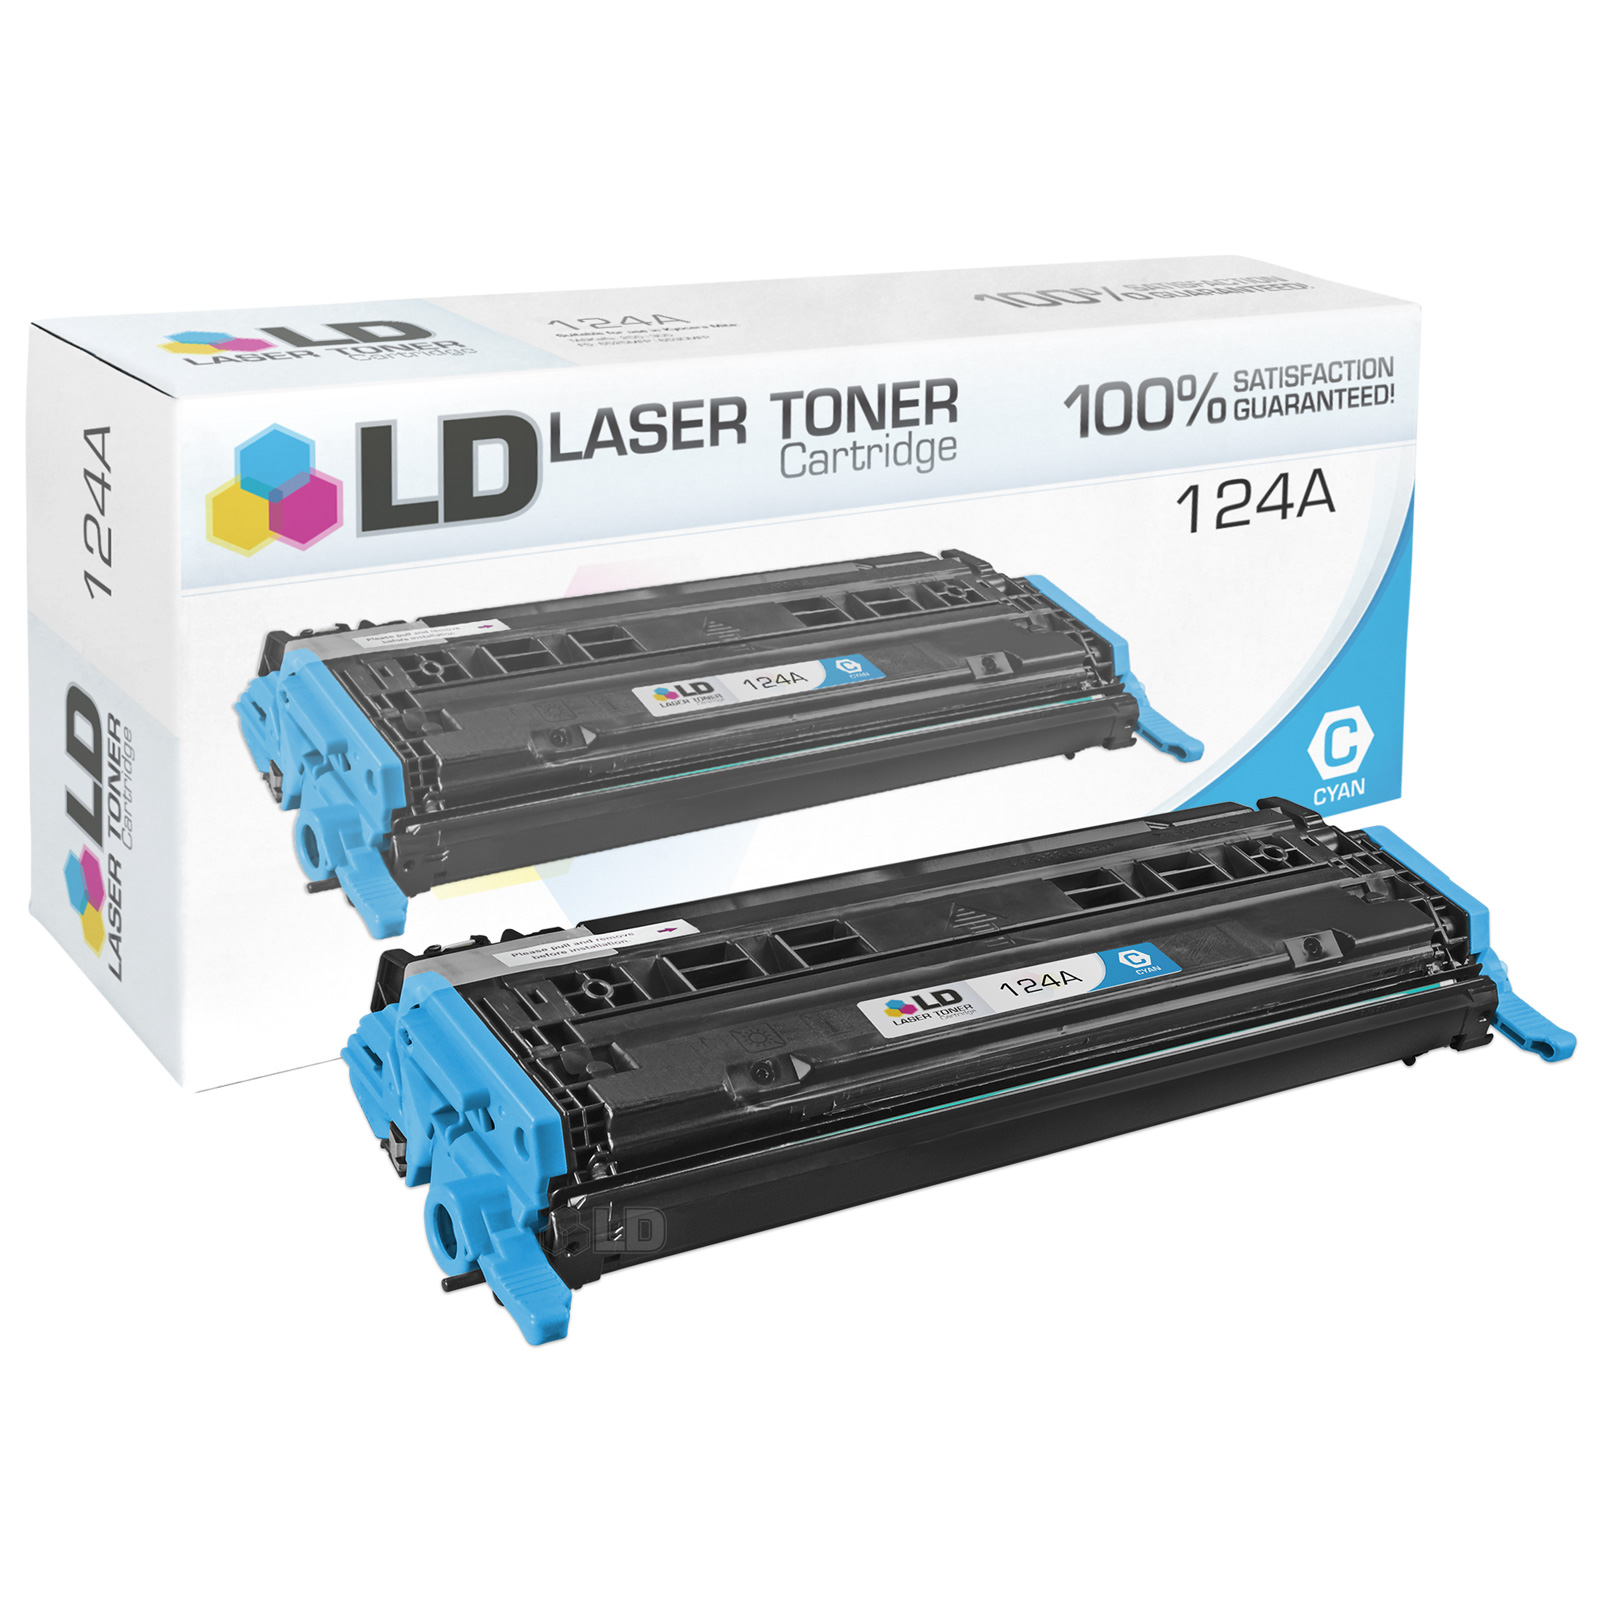 LD Remanufactured Replacement Laser Toner Cartridge for Hewlett Packard Q6001A (HP 124A) Cyan